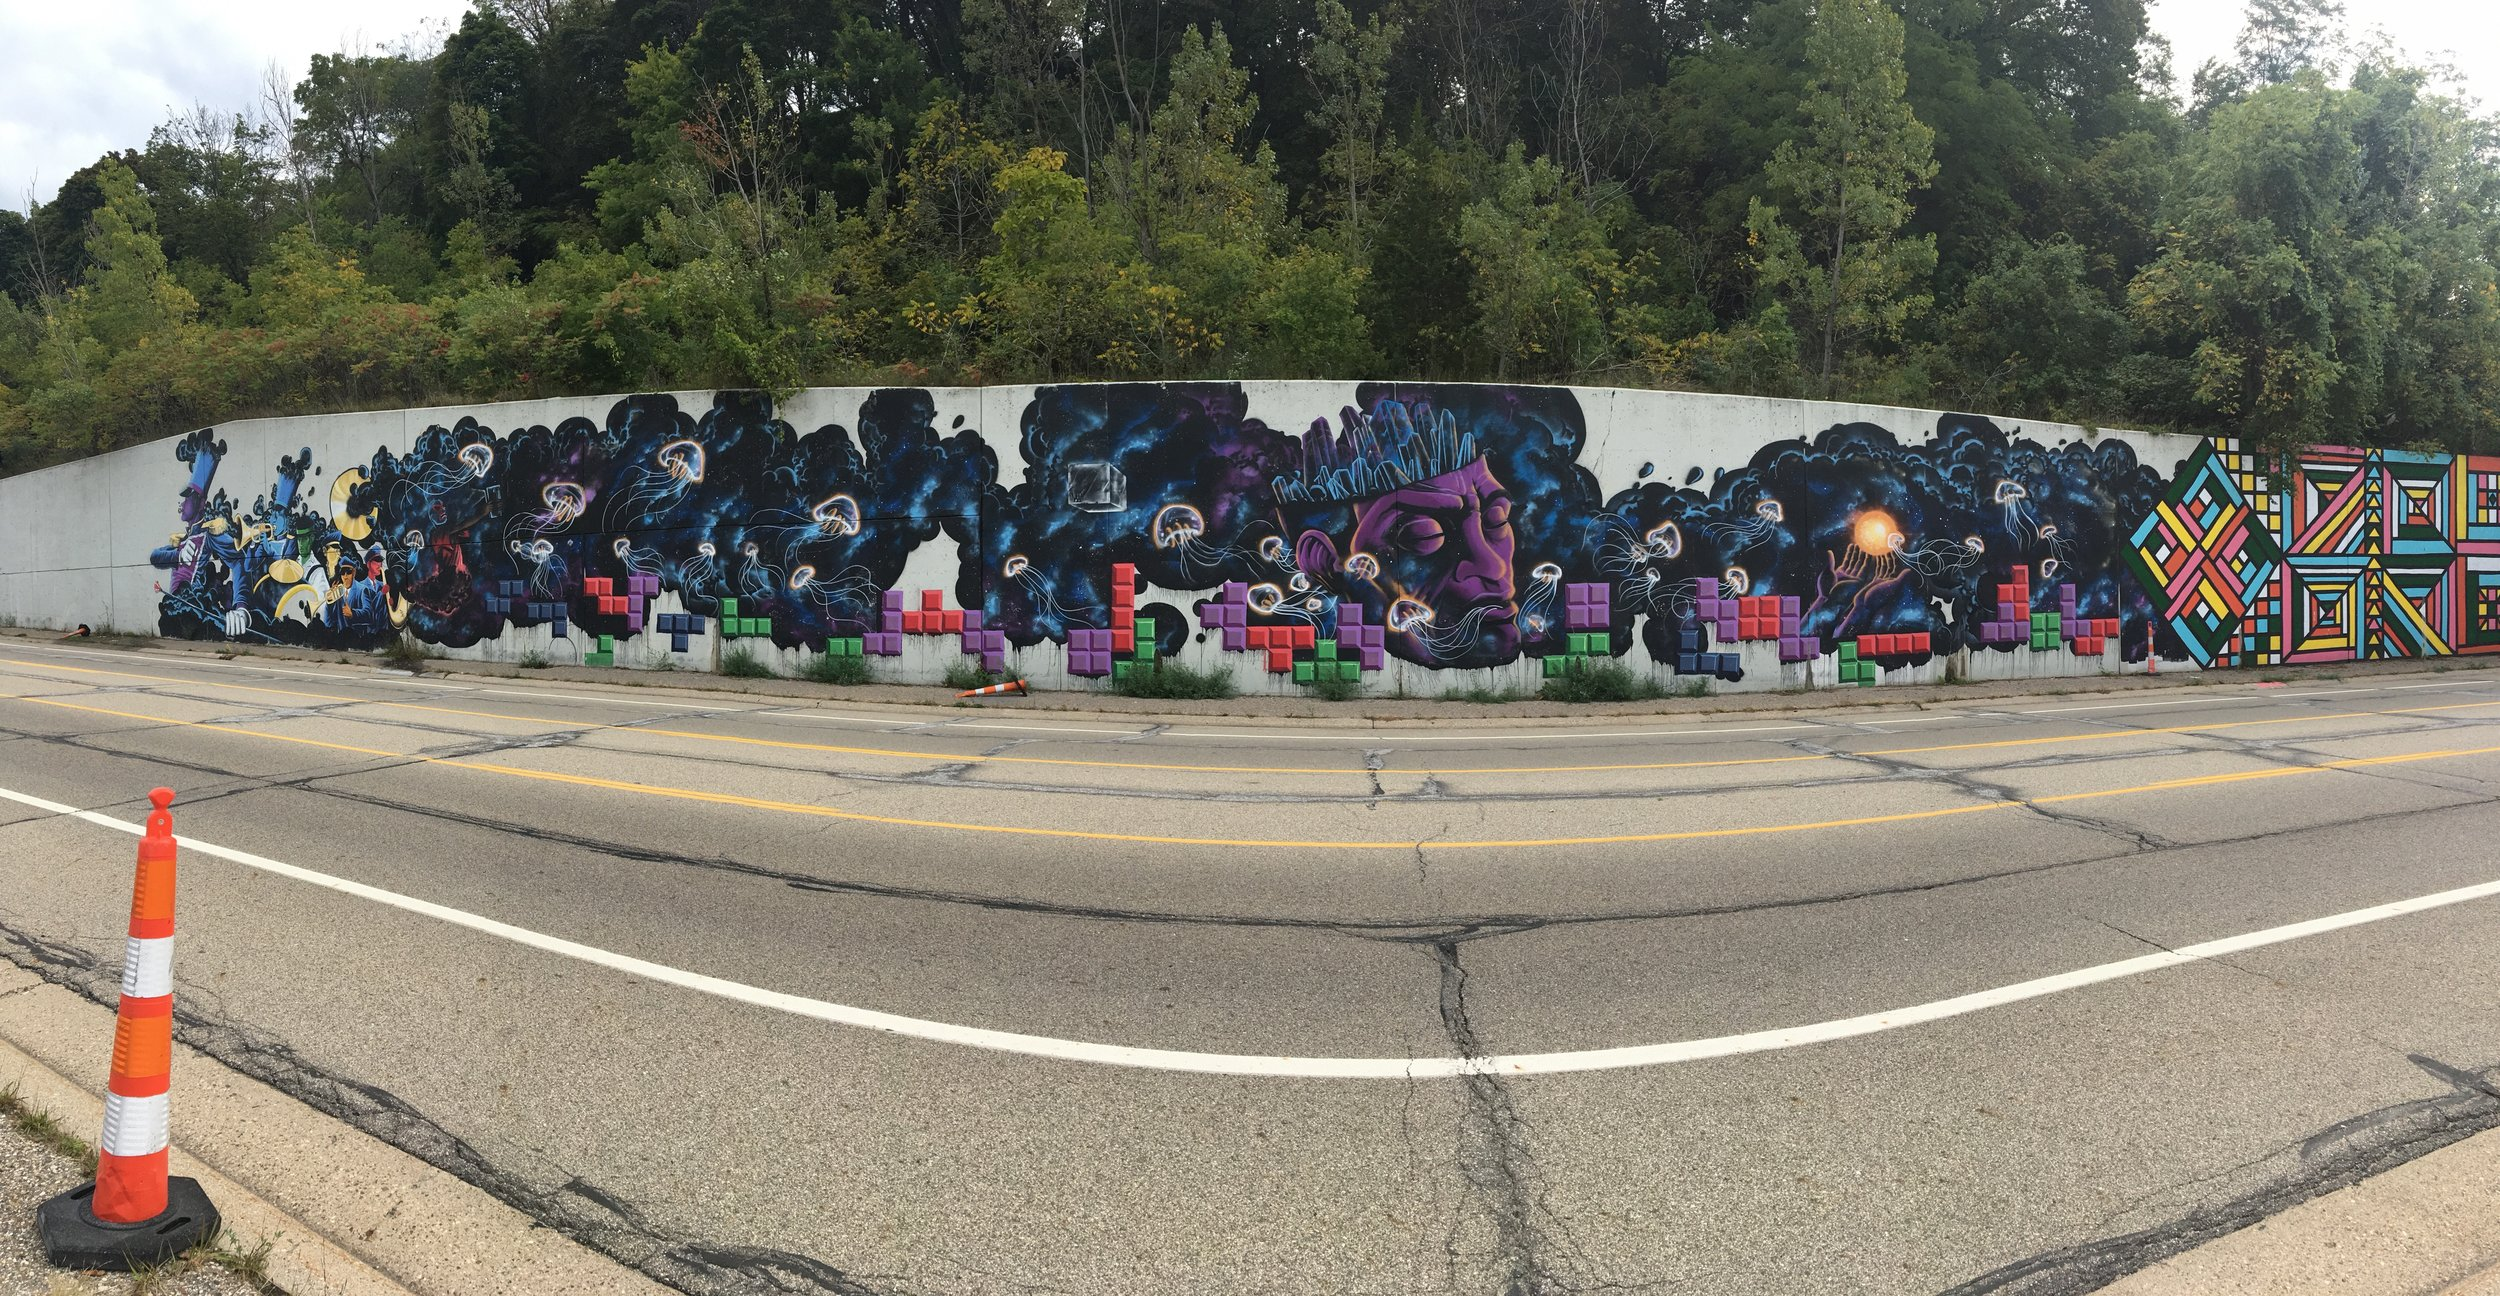 Eberheart retaining wall mural on I-196 (full view)